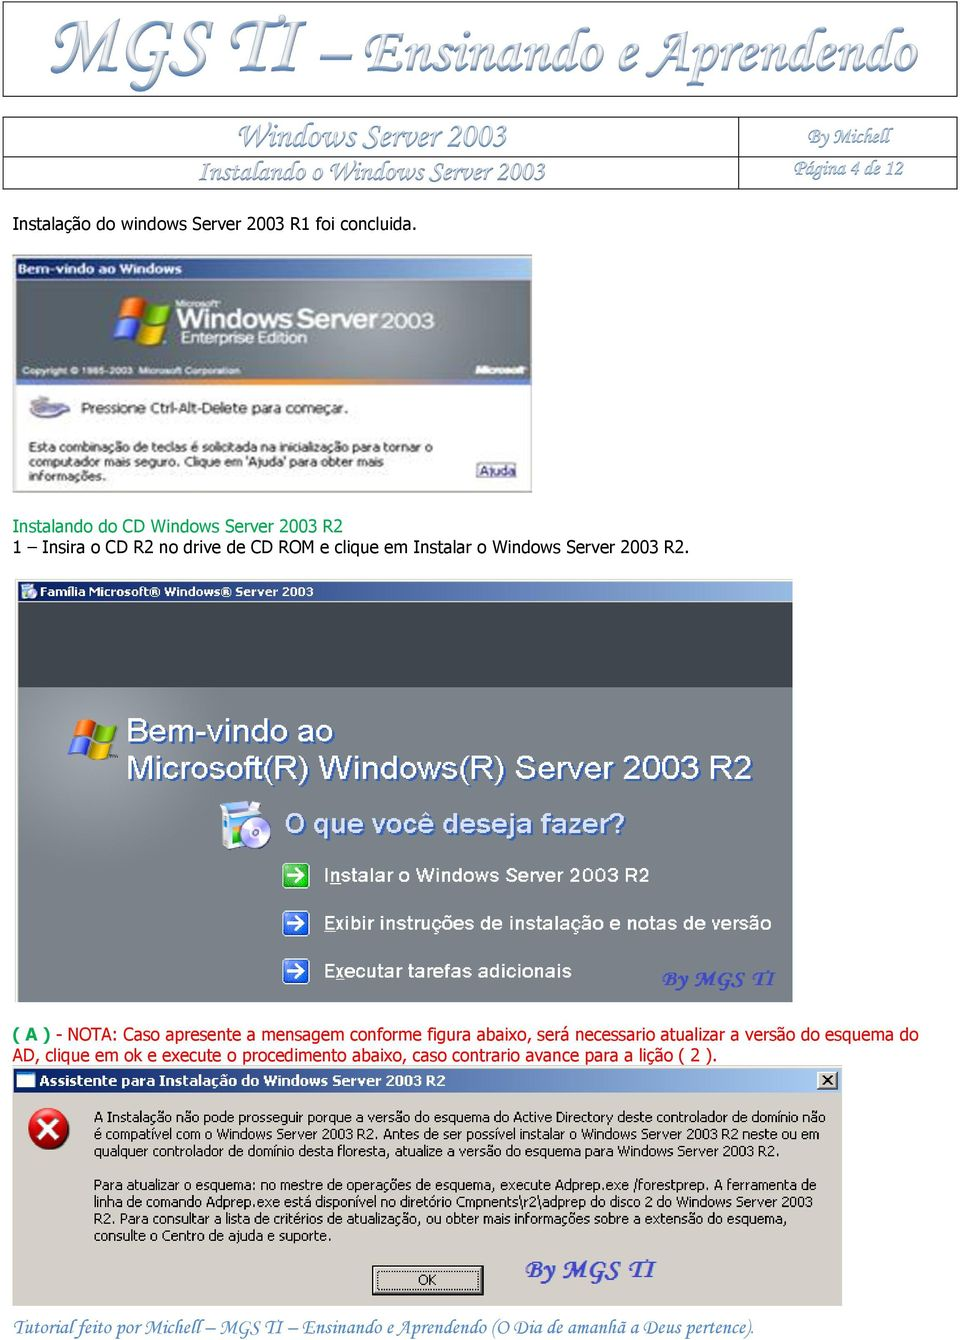 Instalar o Windows Server 2003 R2.